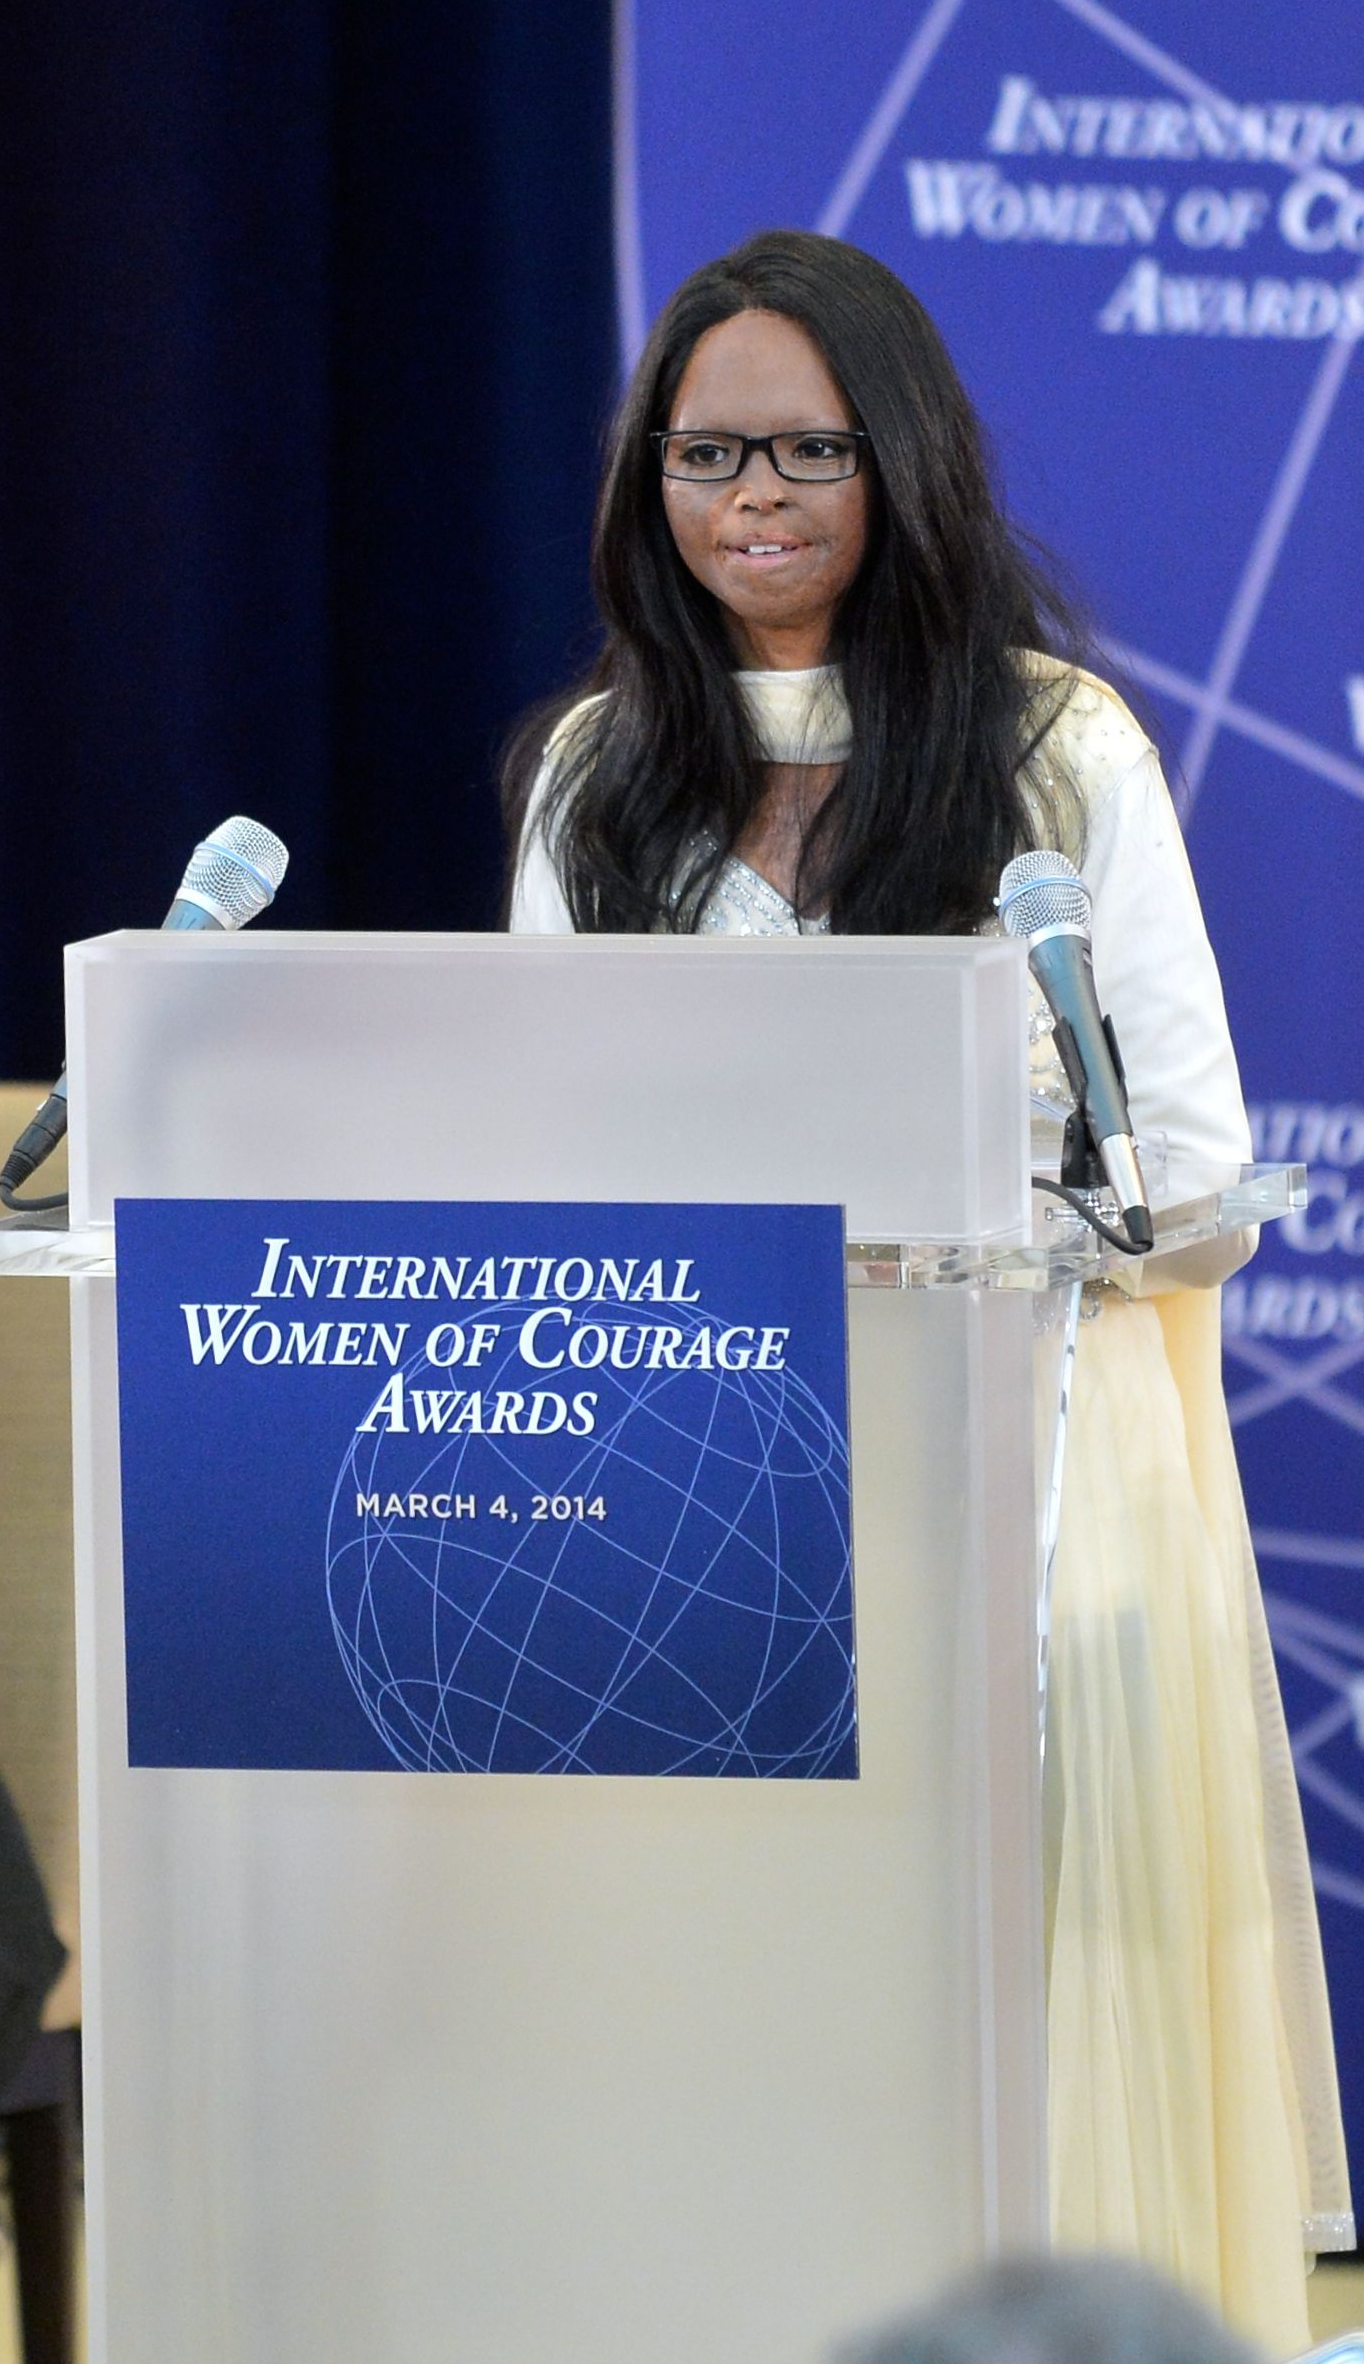 Laxmi Agarwal at the International Women of Courage Award ceremony in 2014. Courtesy US Department of State/Wikimedia Commons.